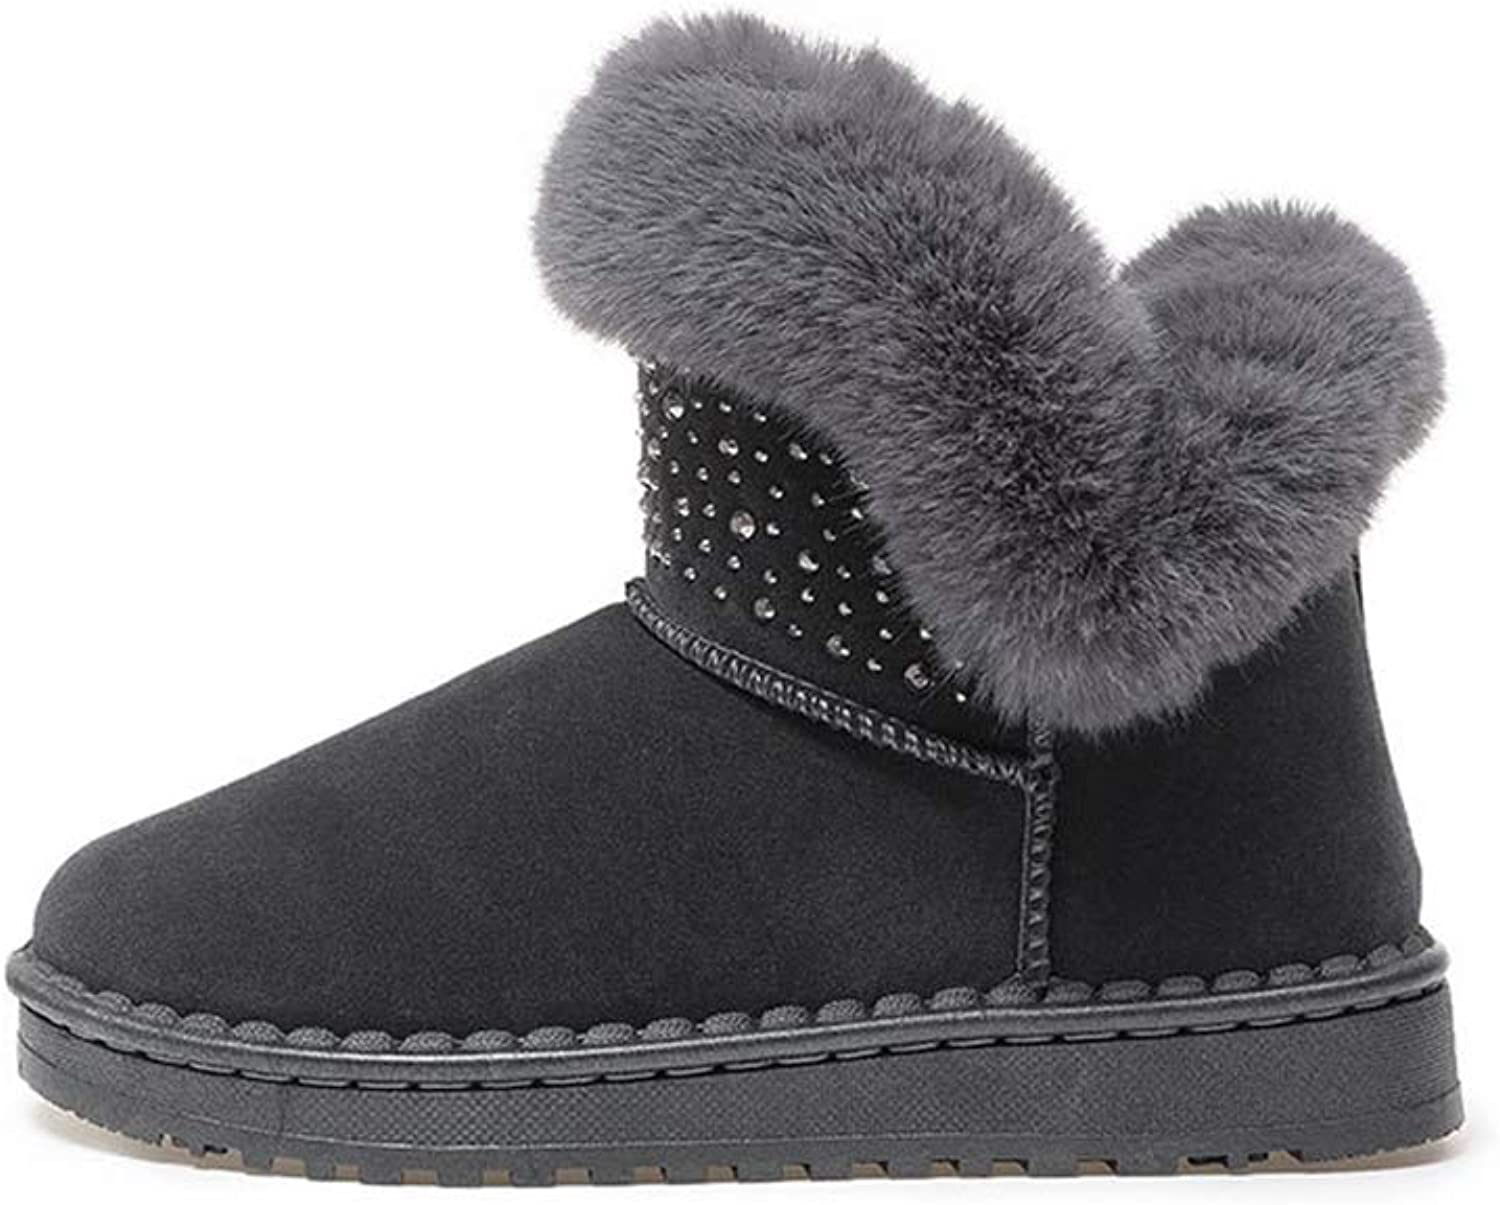 Women's Snow Boots Winter Boots with Fur Winter Warm and Comfortable Boots